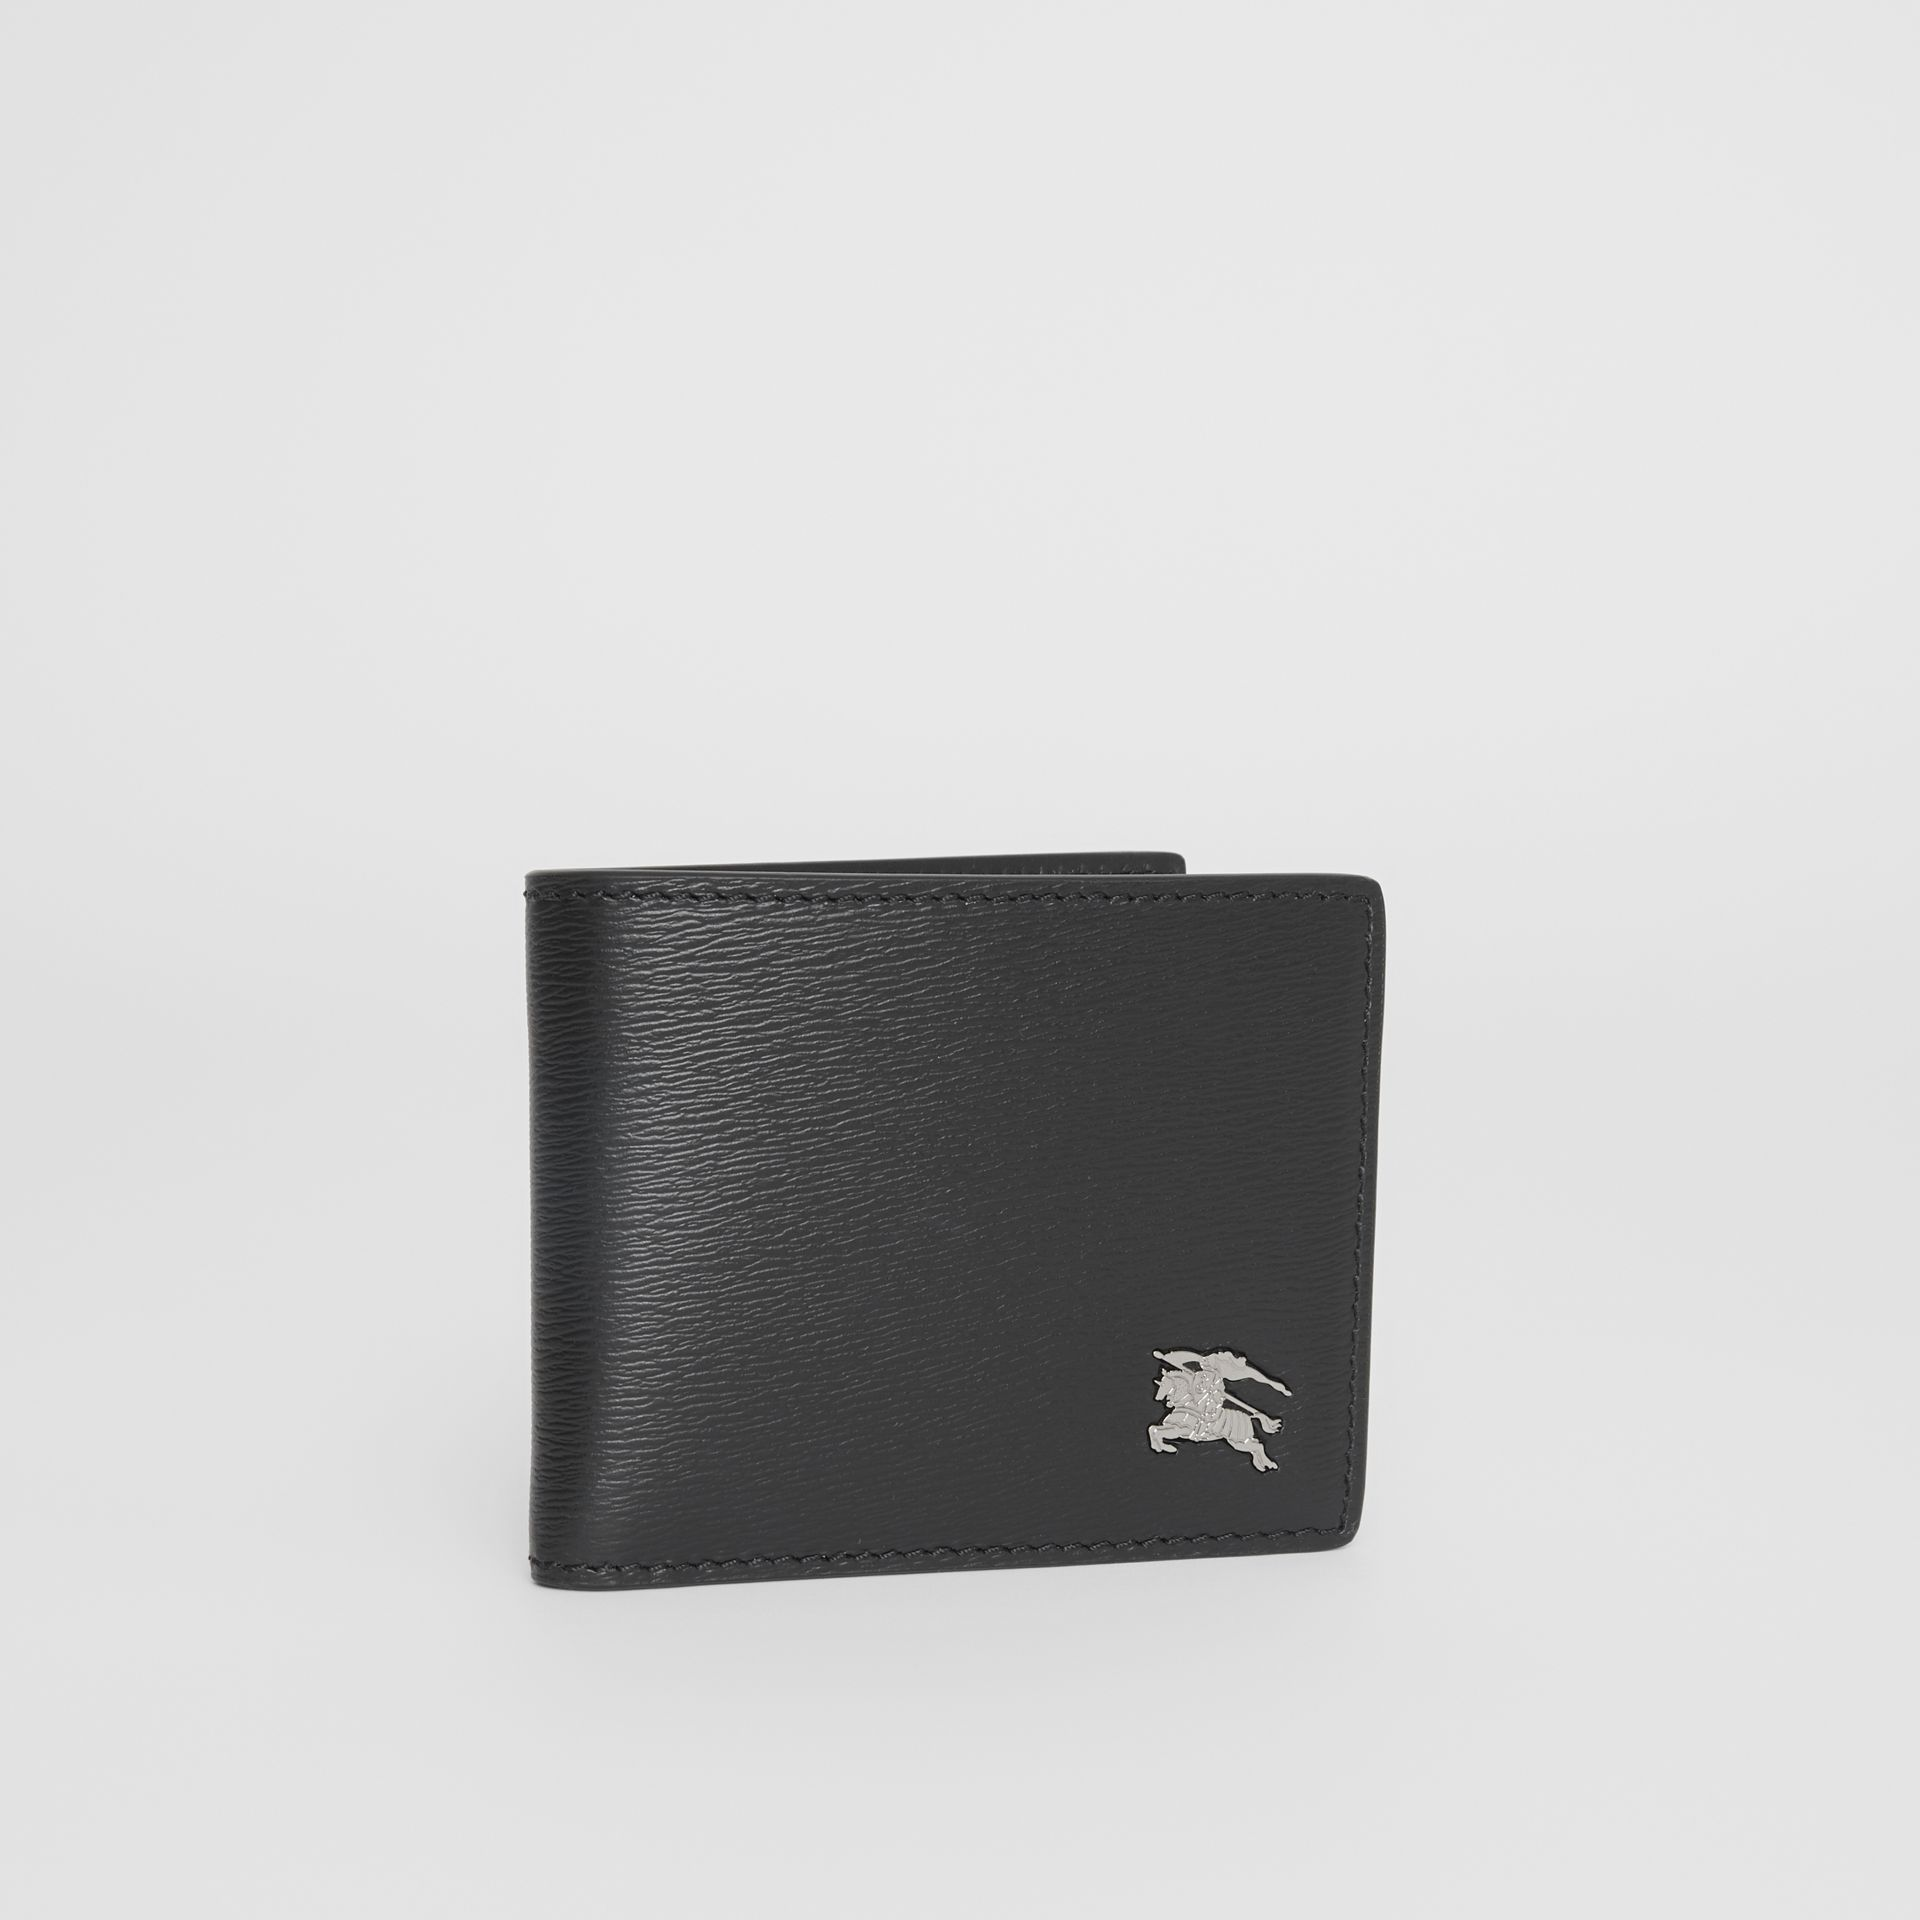 London Leather Bifold Wallet in Black - Men | Burberry Australia - gallery image 3